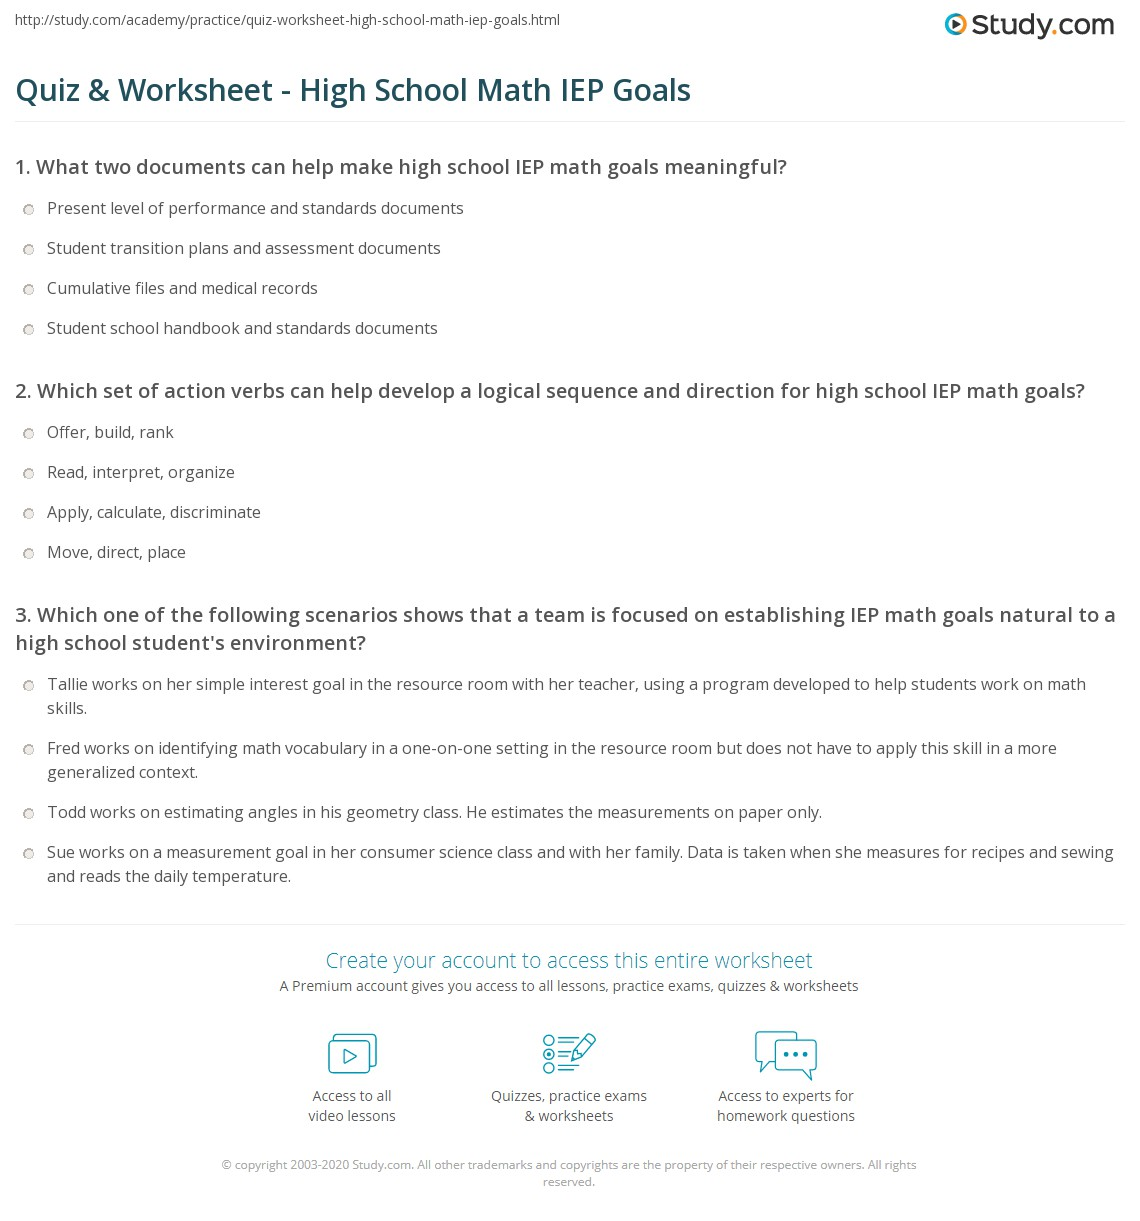 Worksheets Following Directions Worksheets For Middle School quiz worksheet high school math iep goals study com print for worksheet